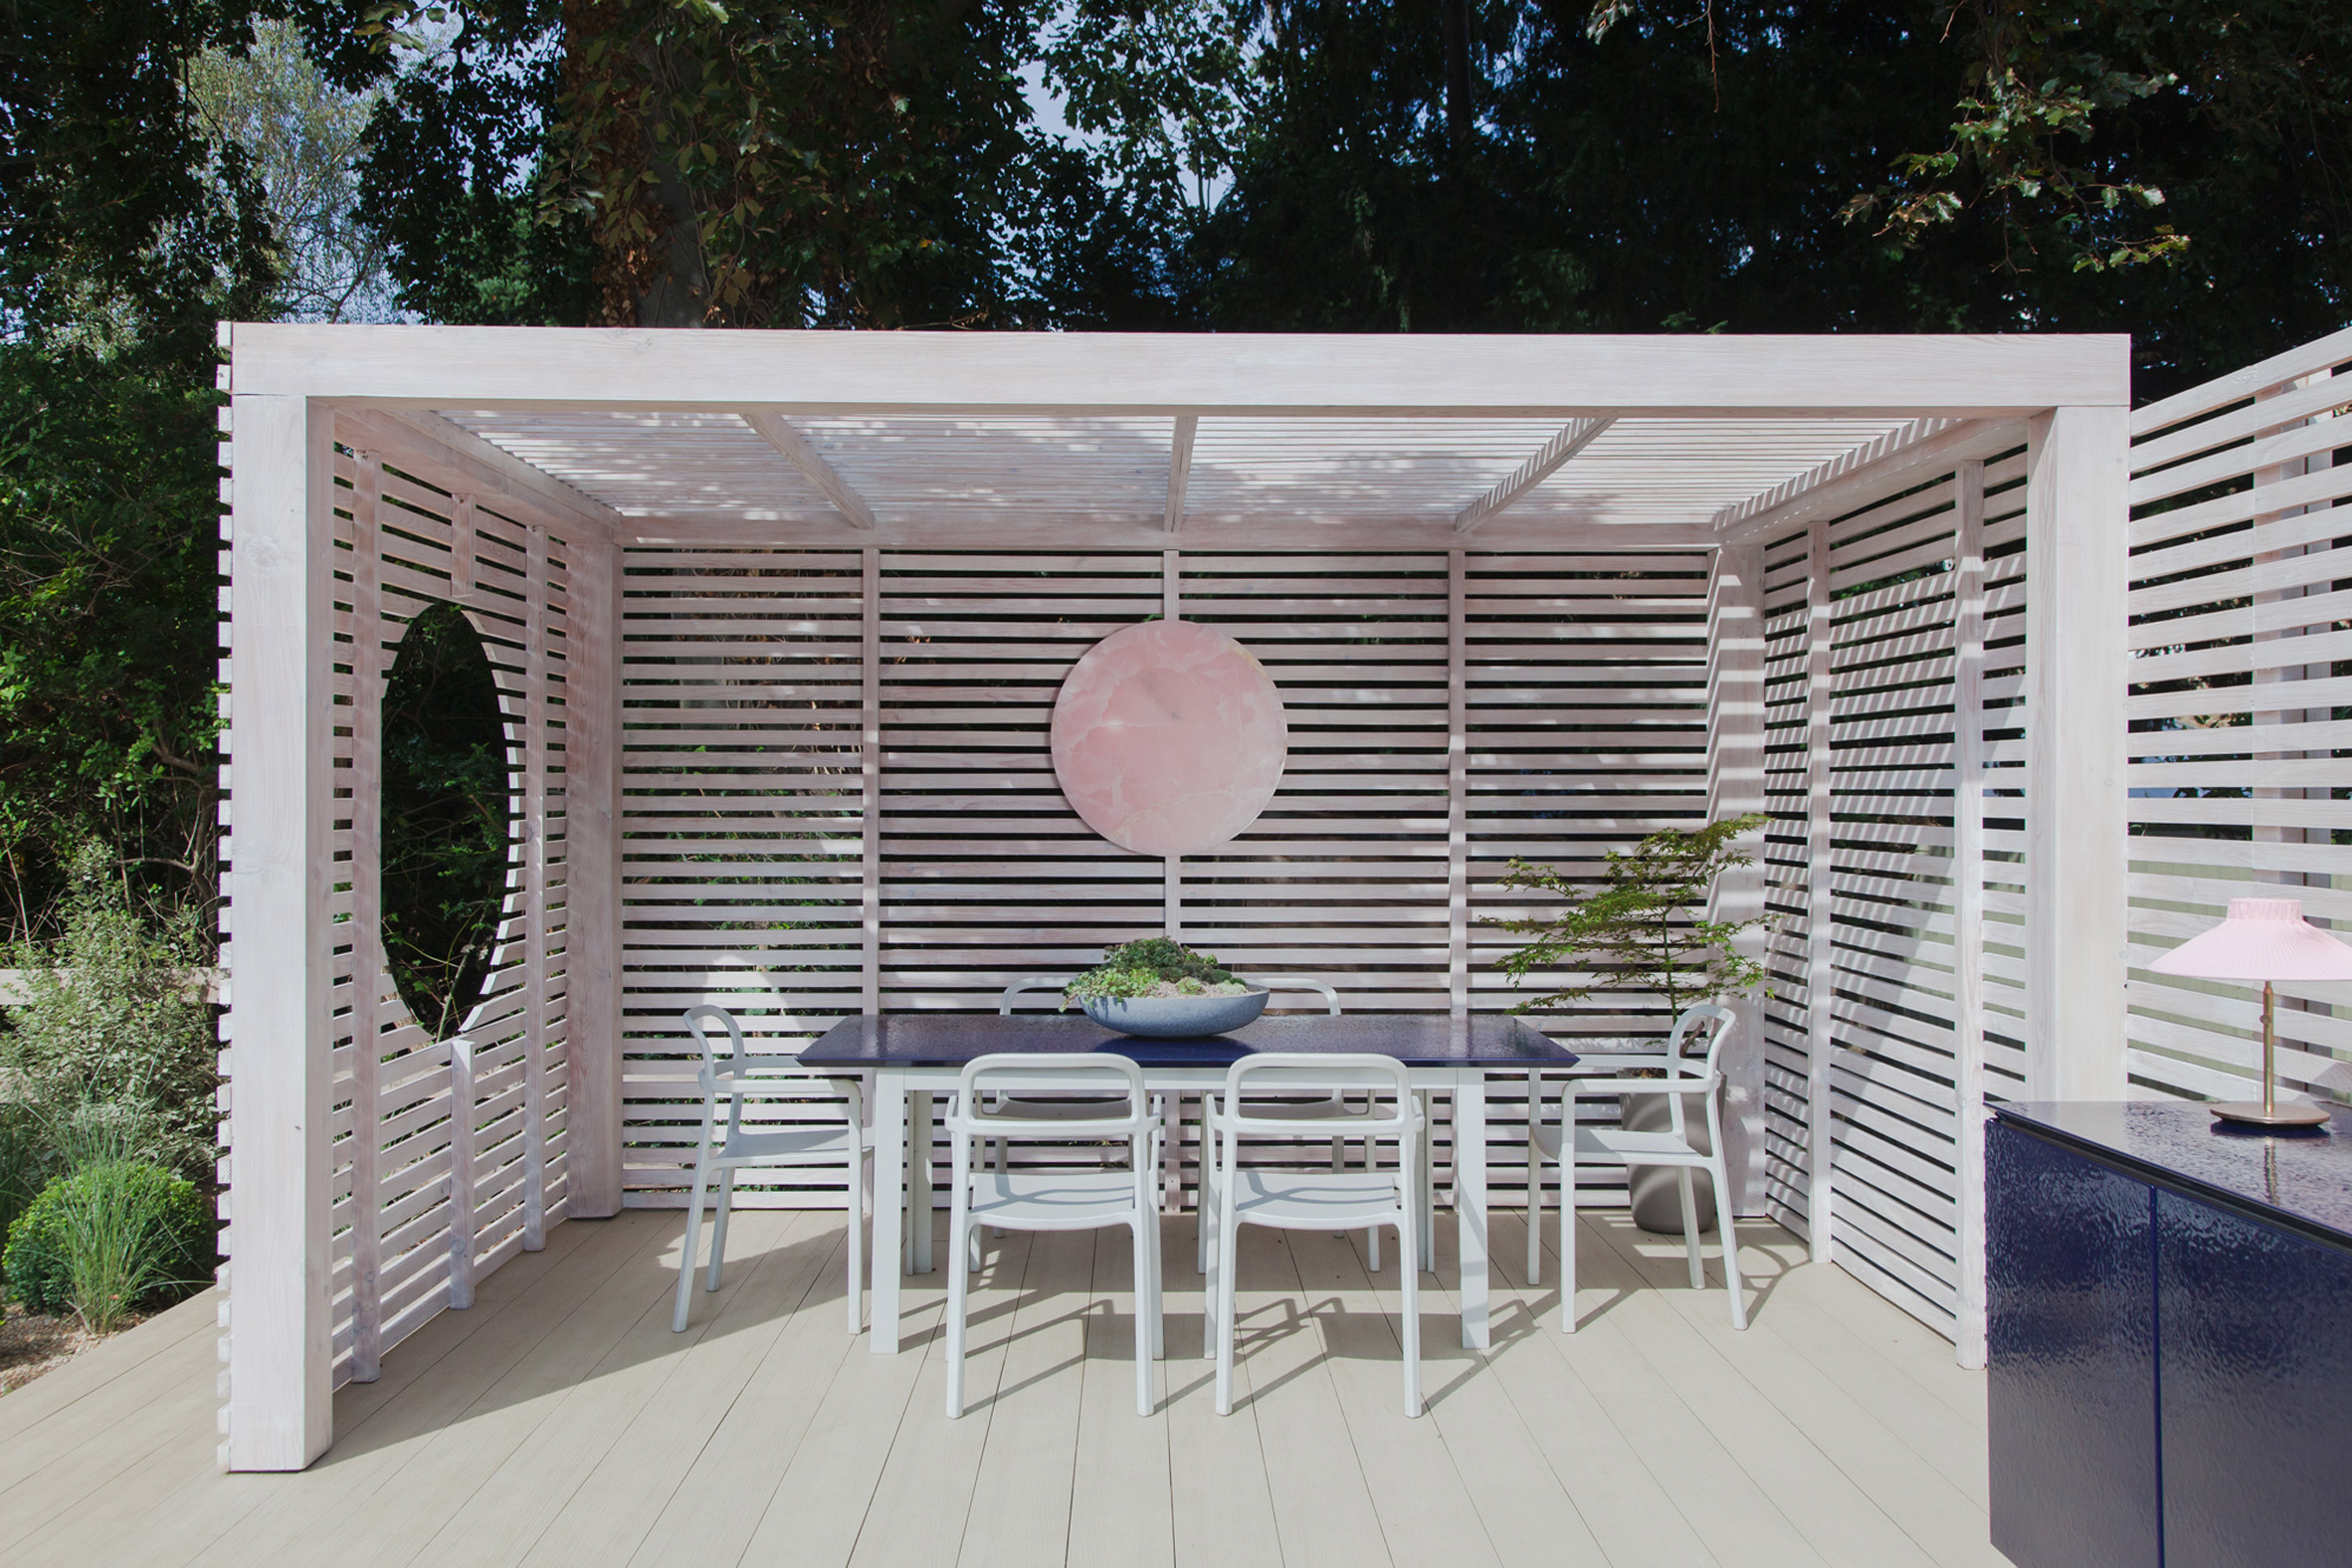 White-painted garden pavilion with dining area